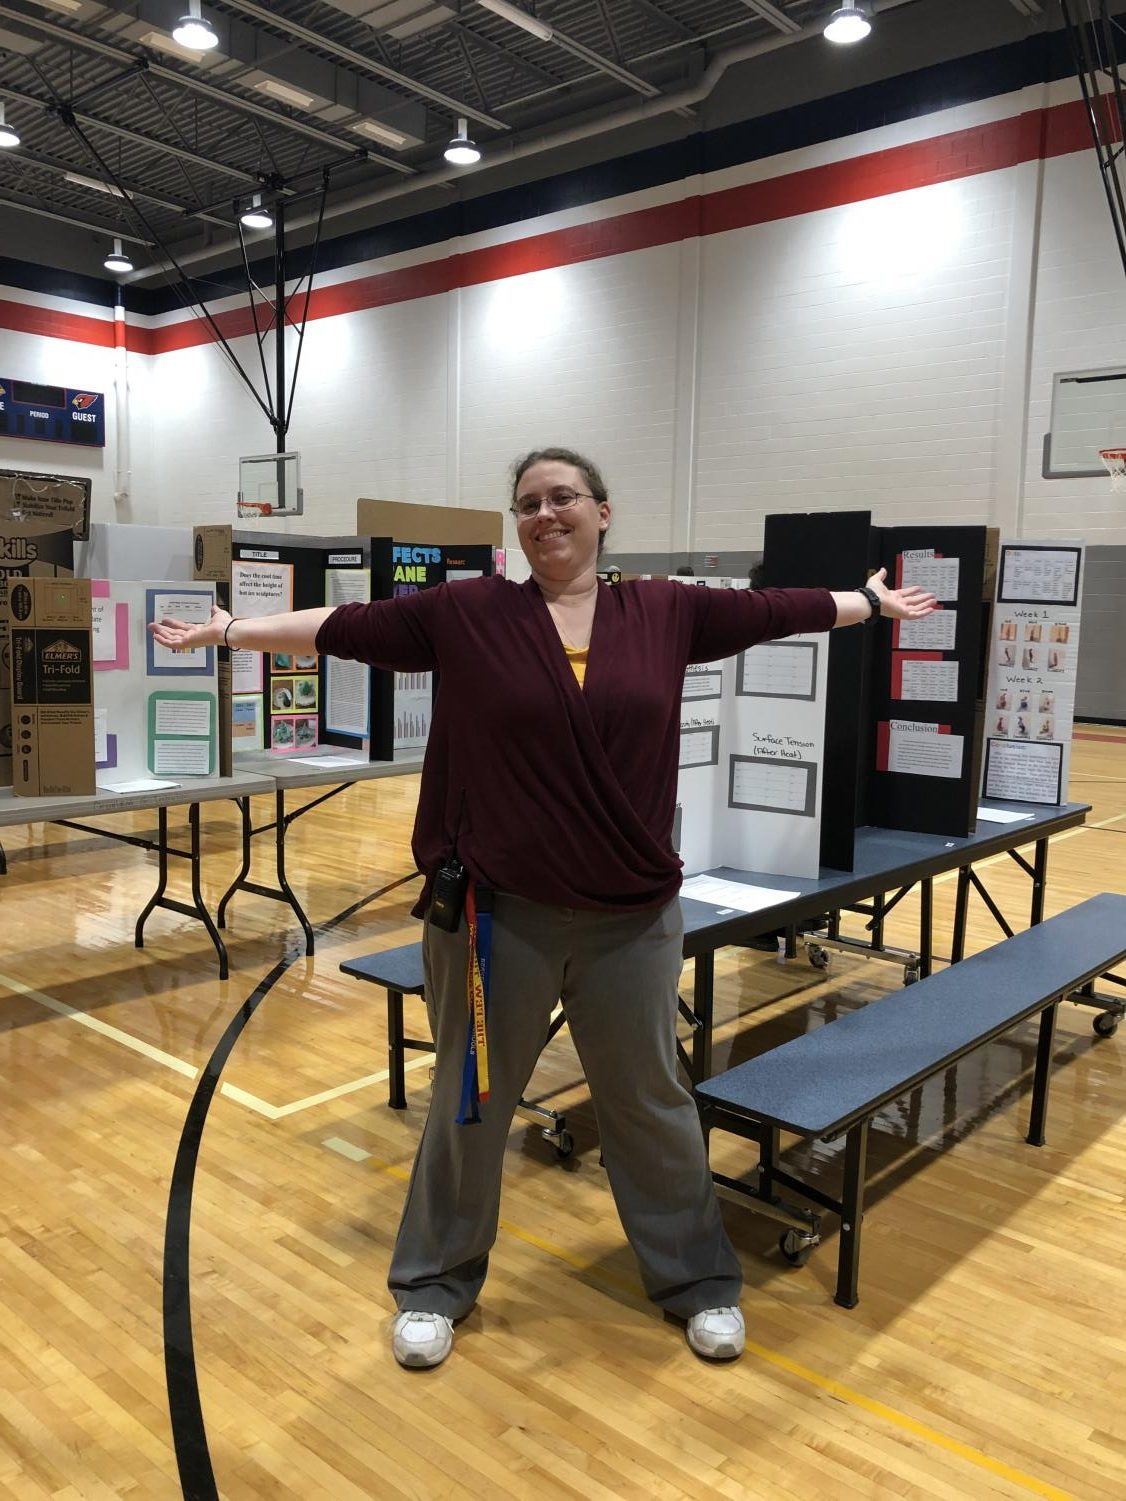 Ms. Woofter showing off her student's projects